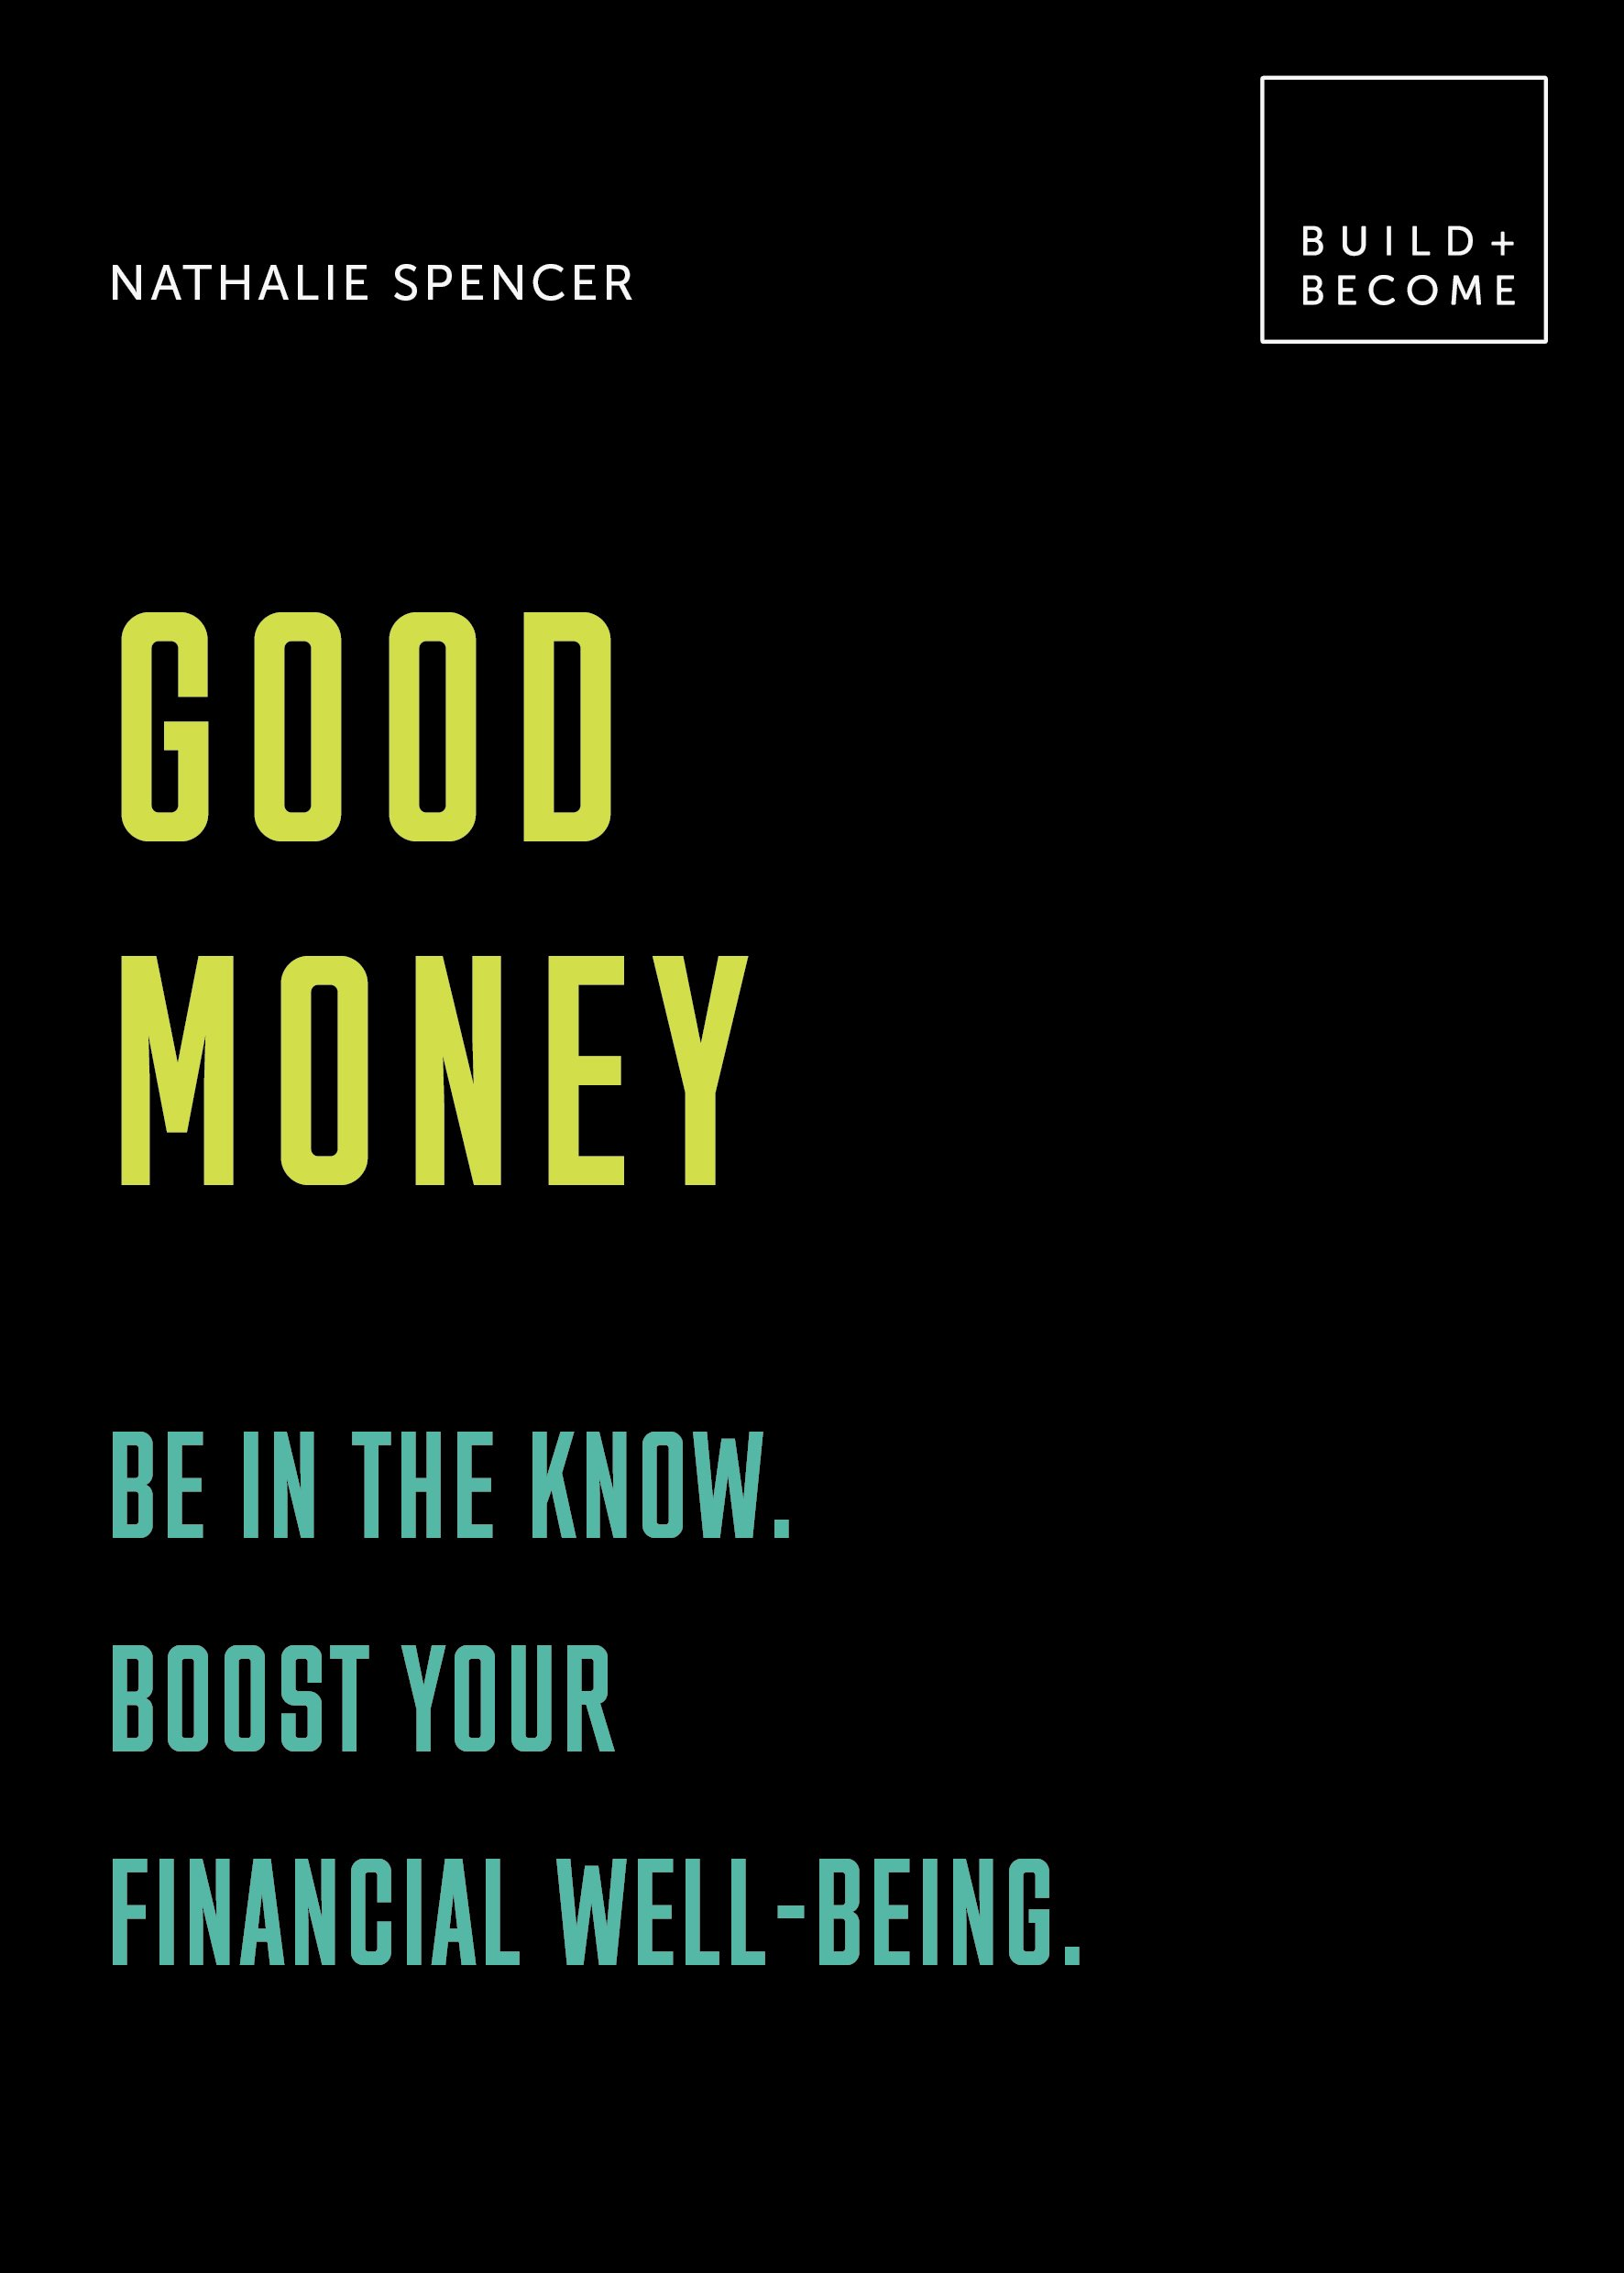 Good Money: Understand your choices. Boost your financial wellbeing.: 20 thought-provoking lessons (BUILD+BECOME) by White Lion Publishing